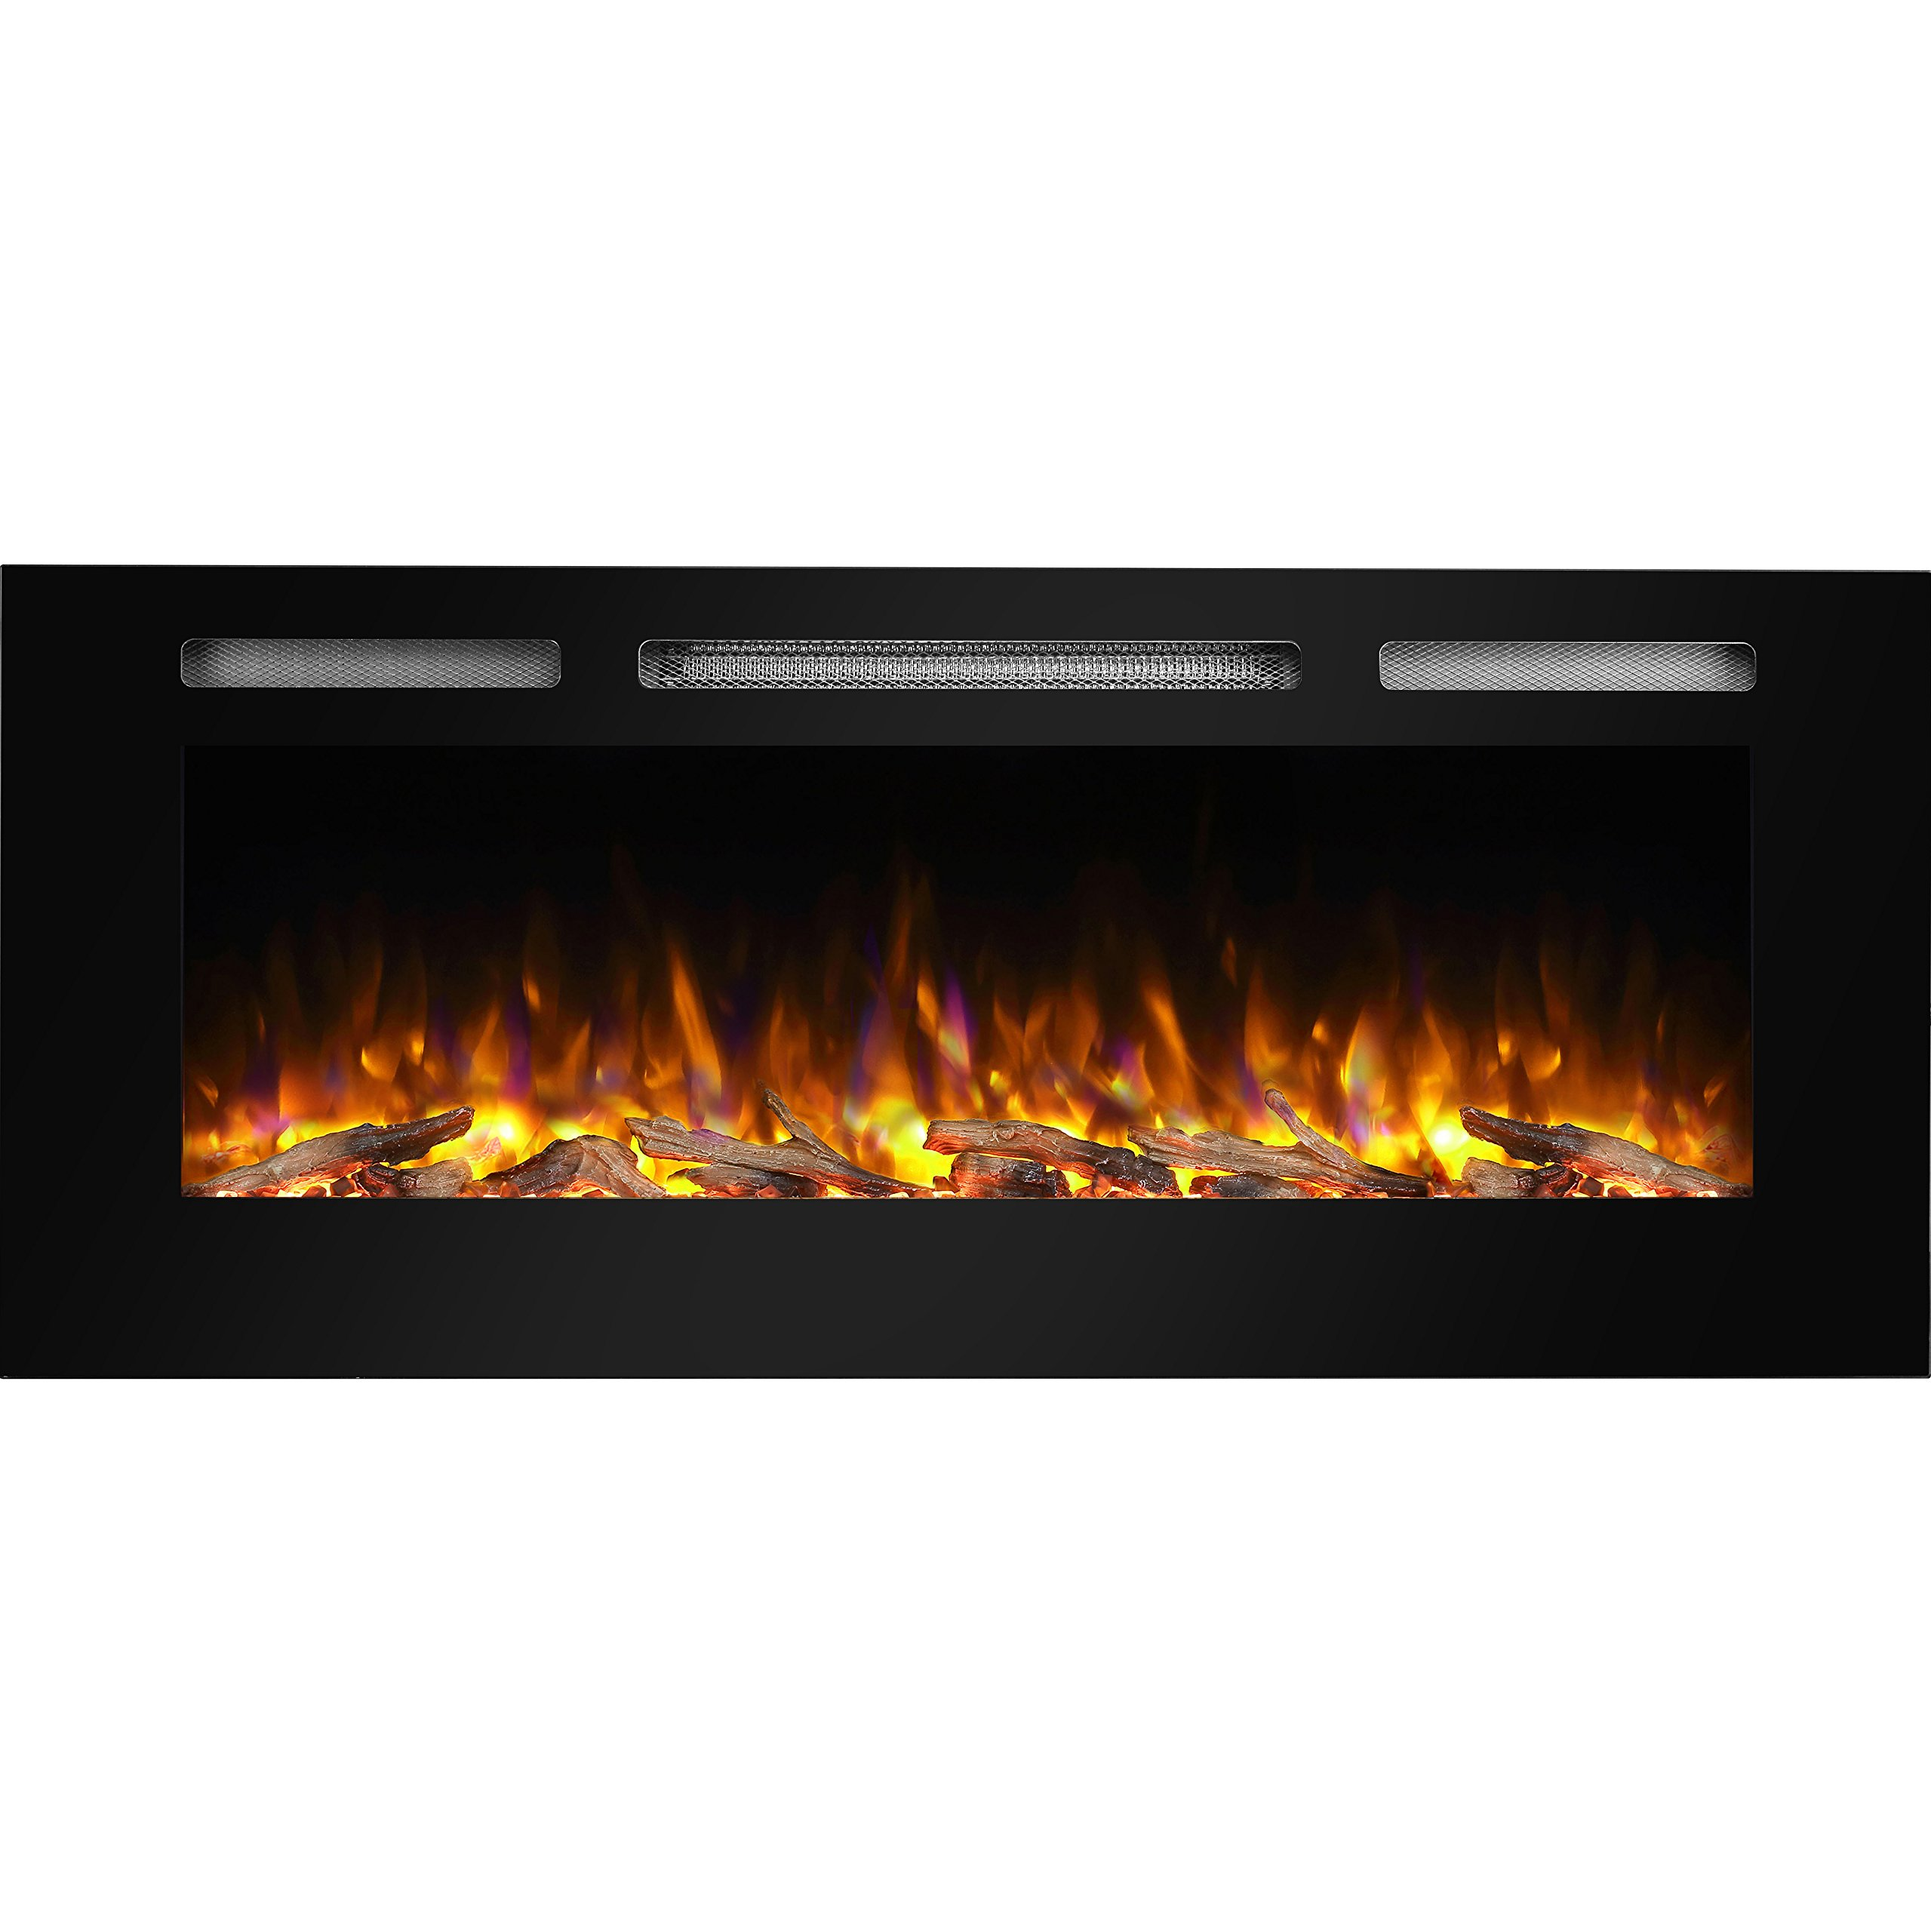 PuraFlame 48'' Alice In-Wall Recessed Electric Fireplace, Touch Screen Control Panel, Remote Control, 1500W, Black by PuraFlame